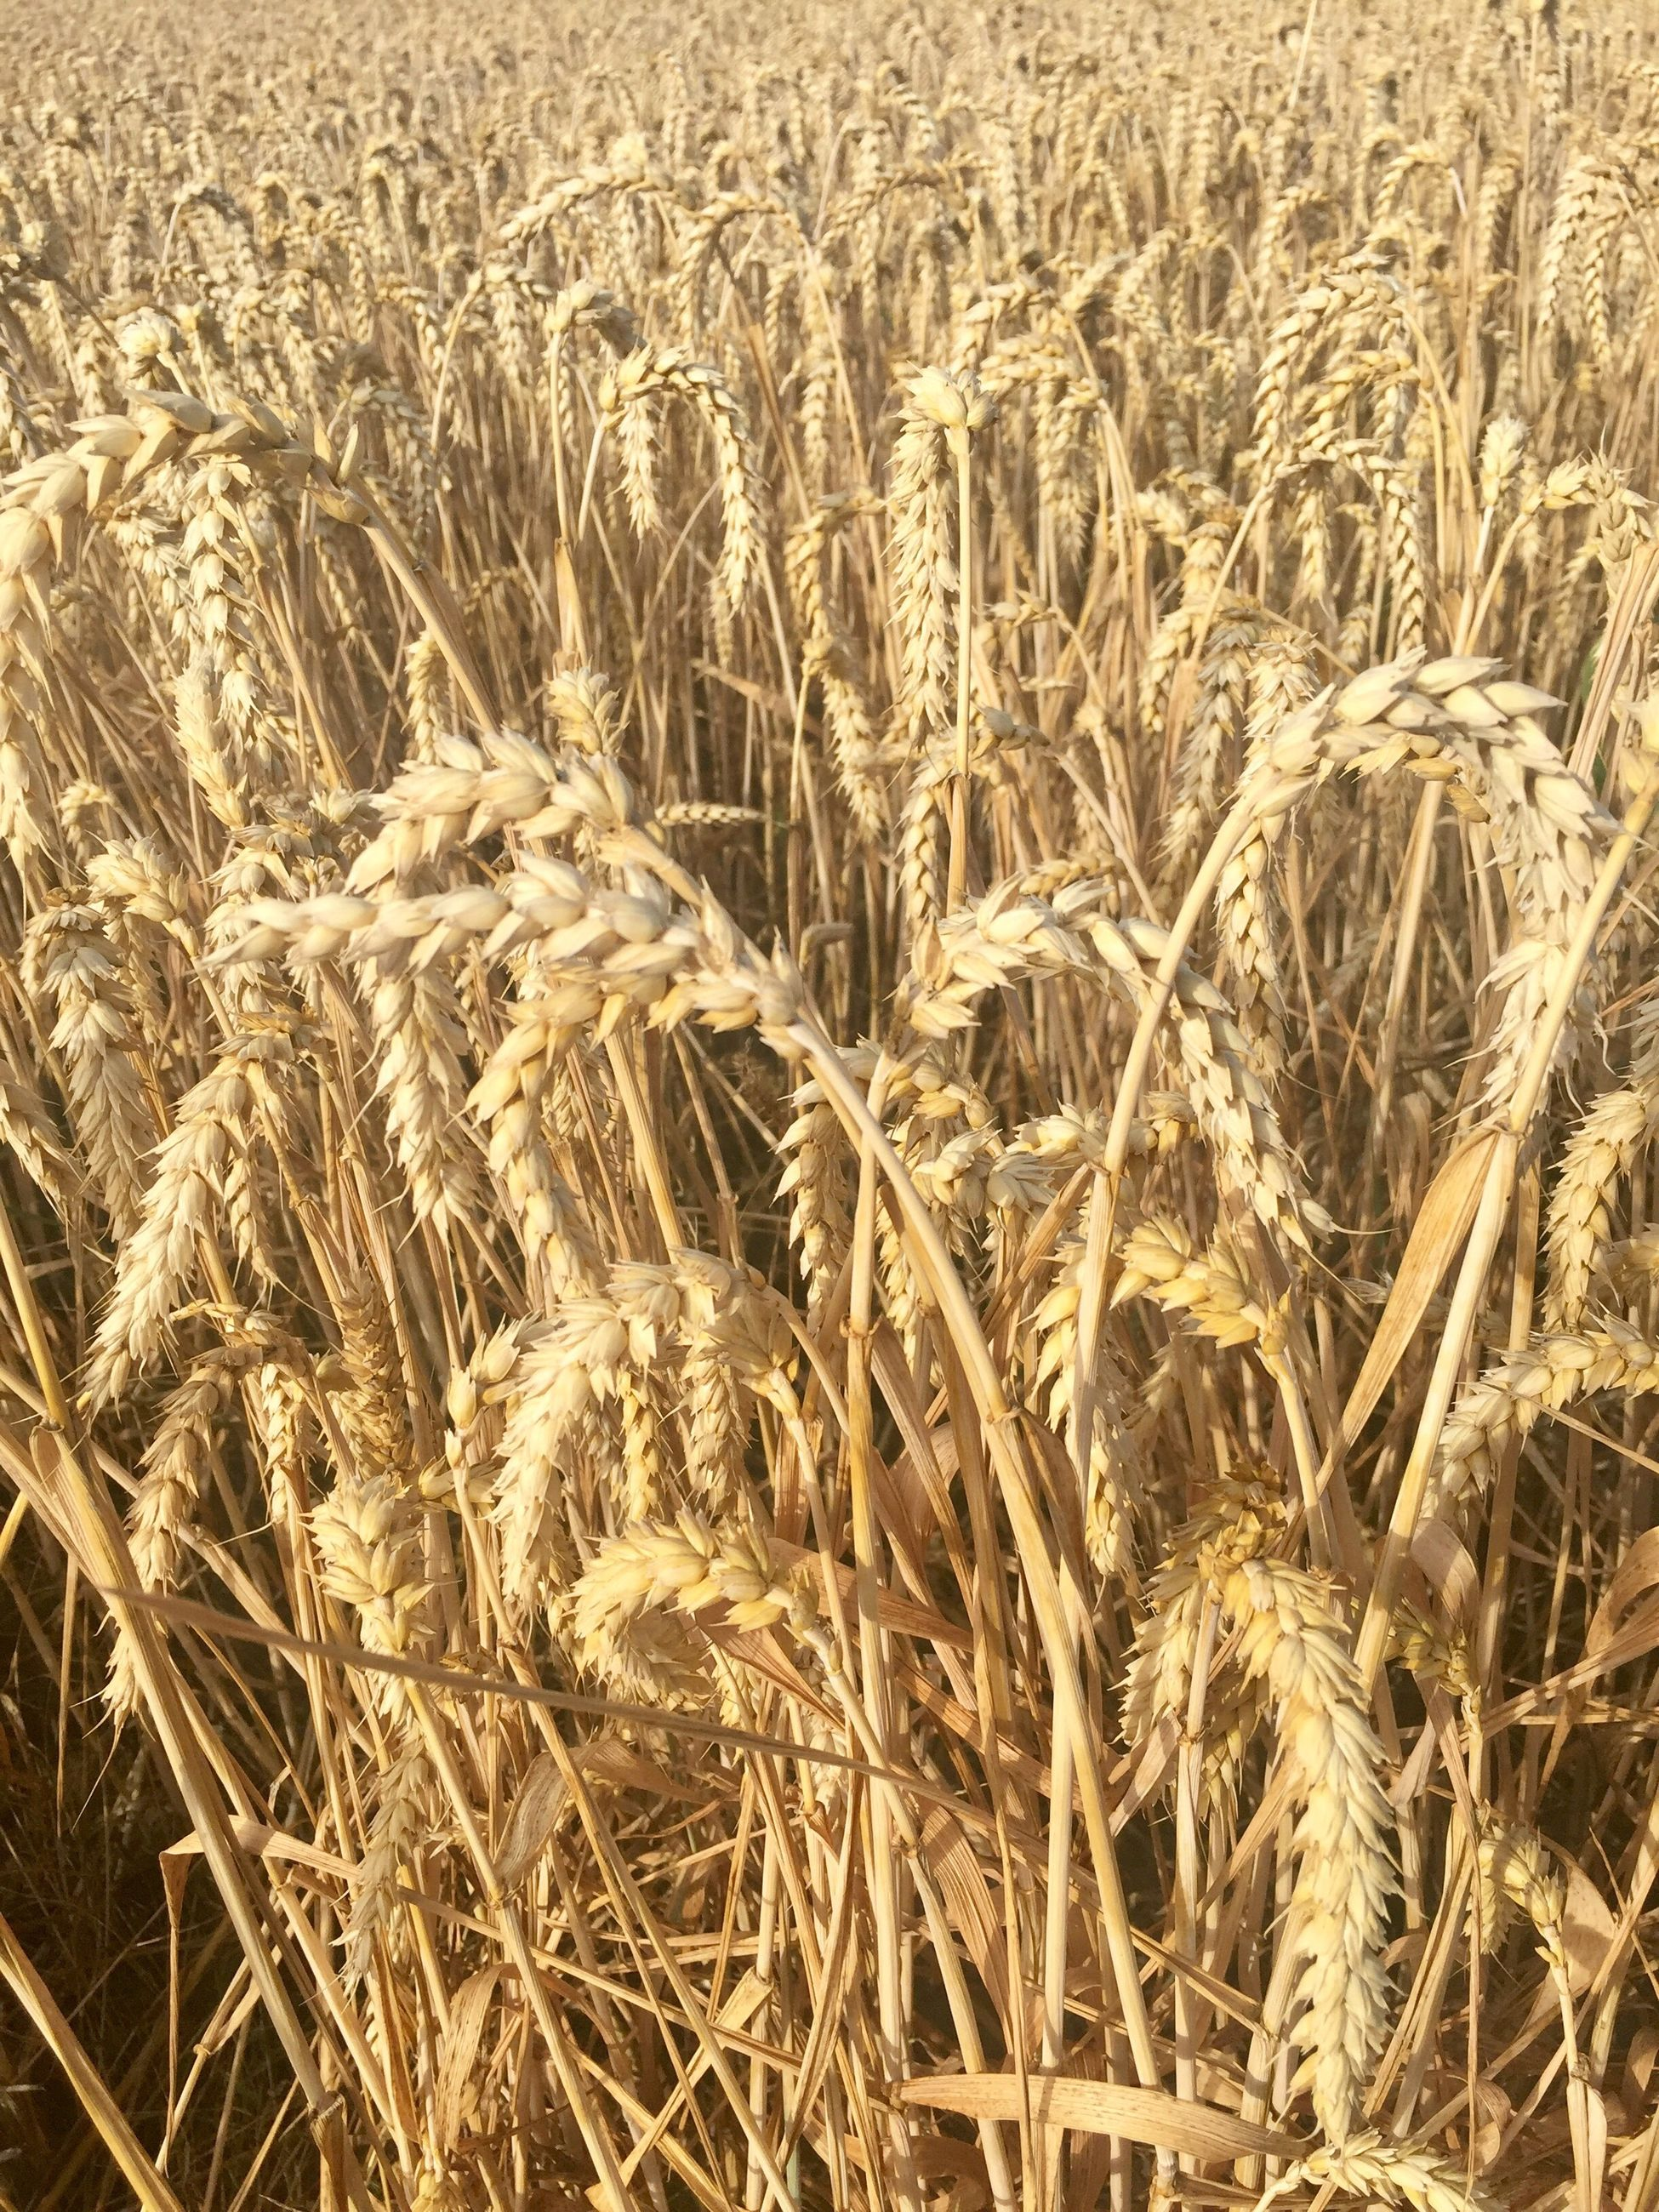 agriculture, cereal plant, wheat, crop, field, farm, growth, nature, plant, rural scene, backgrounds, gold colored, straw, outdoors, no people, full frame, summer, day, grass, close-up, rye - grain, beauty in nature